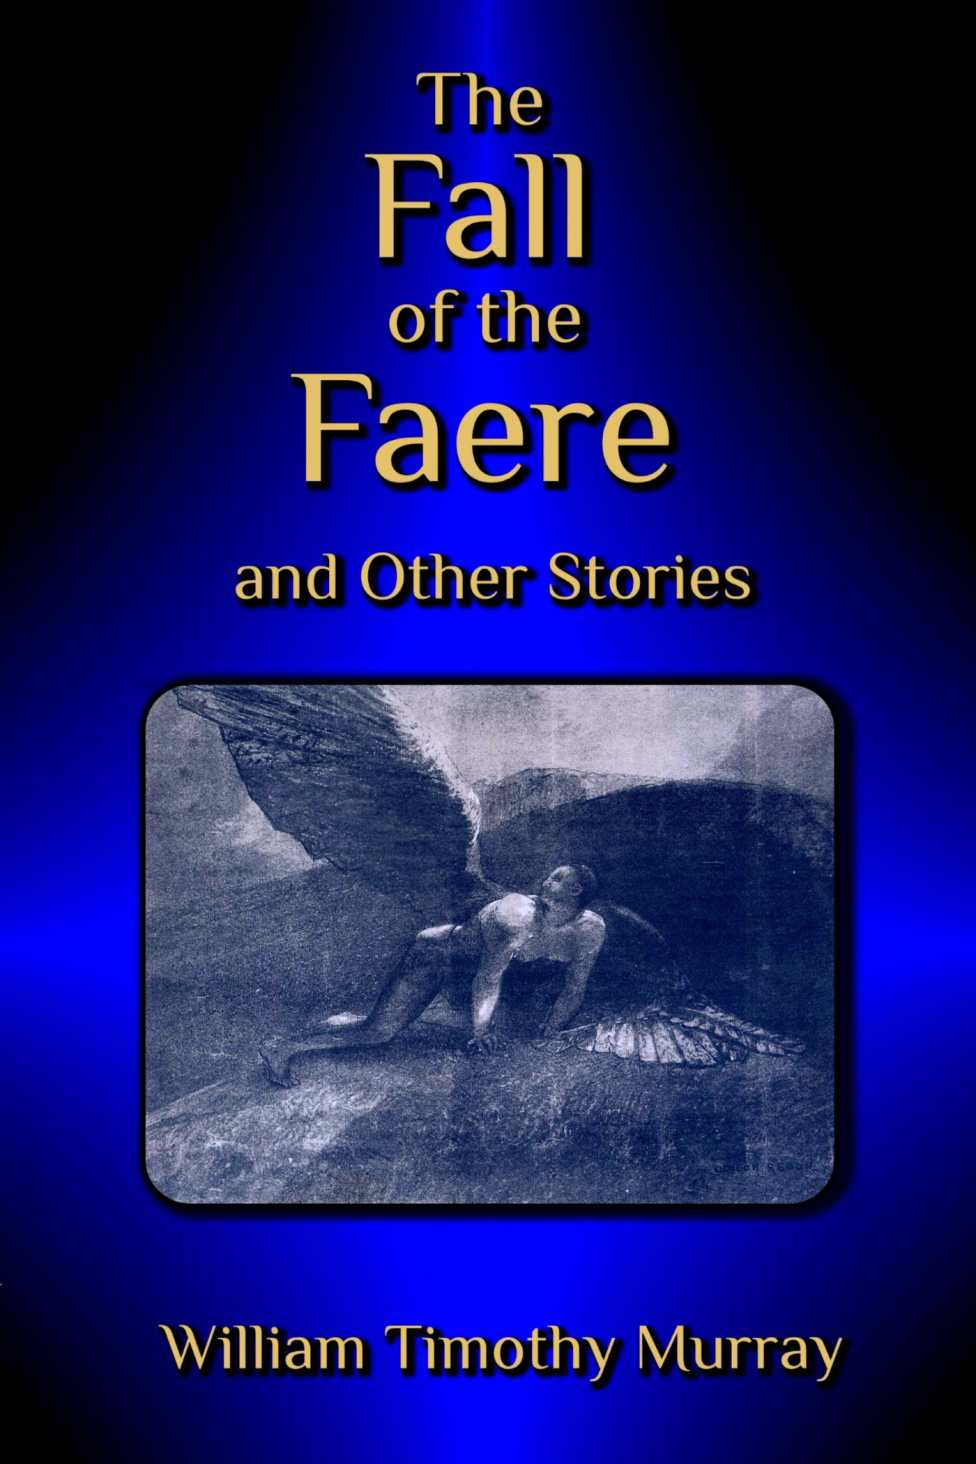 The Fall of the Faere